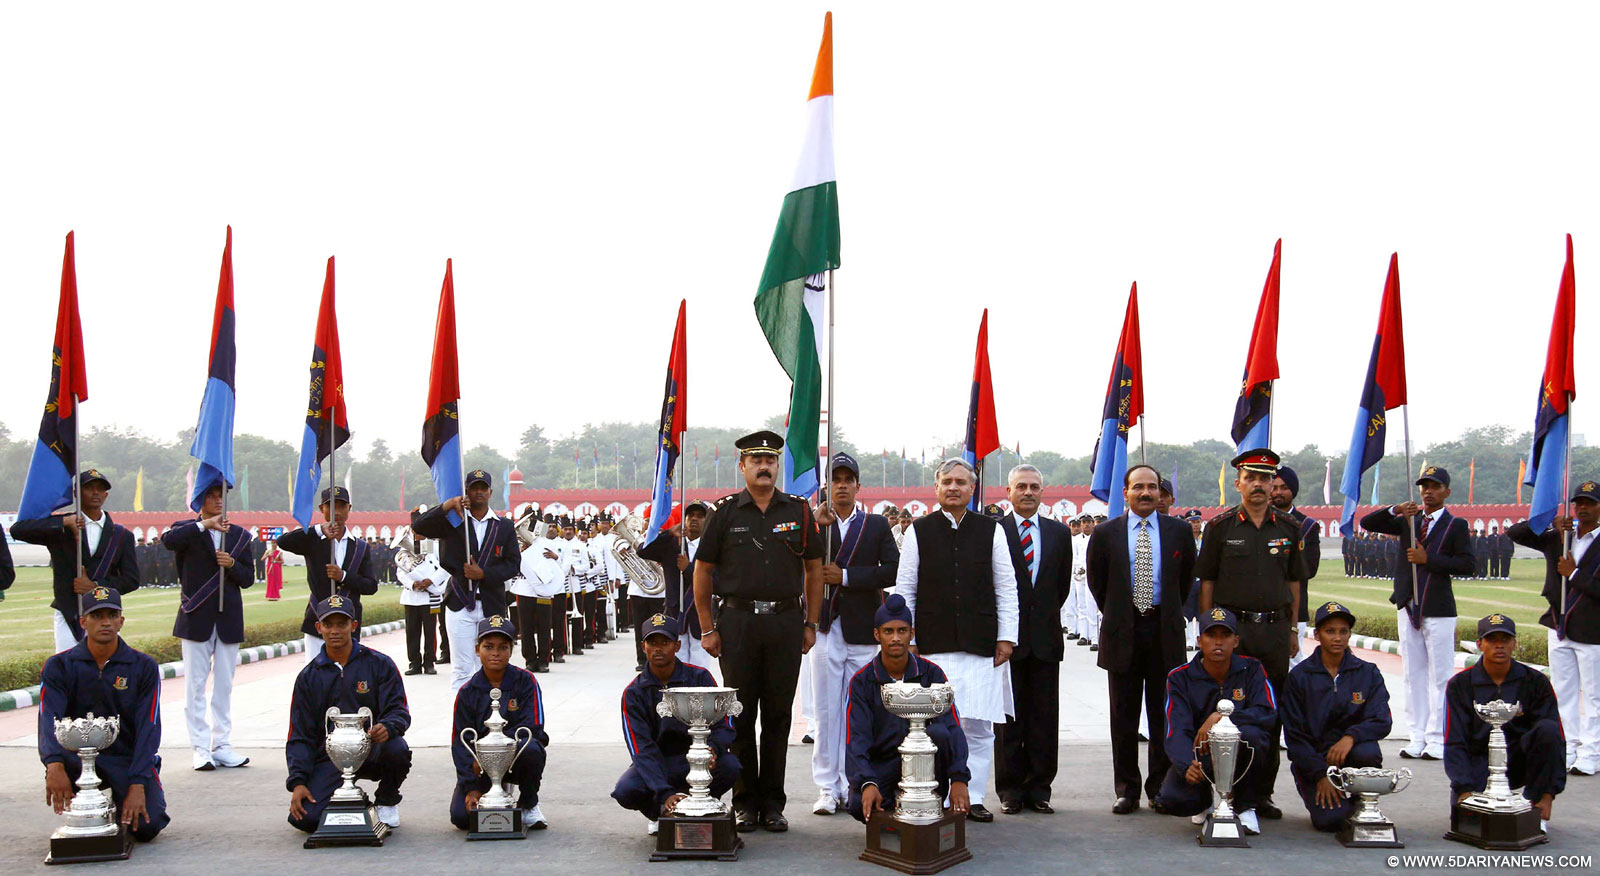 The Minister of State for Planning (Independent Charge) and Defence, Shri Rao Inderjit Singh in a group photograph with the RRM - winners of Throphies for each events of the NCC games 2015 VIJL0566, at the Closing Ceremony of NCC National Games 2015, at DGNCC Garrison Parade Ground, in New Delhi on October 17, 2015. The Chief of the Air Staff, Air Chief Marshal Arup Raha and other dignitaries are also seen.